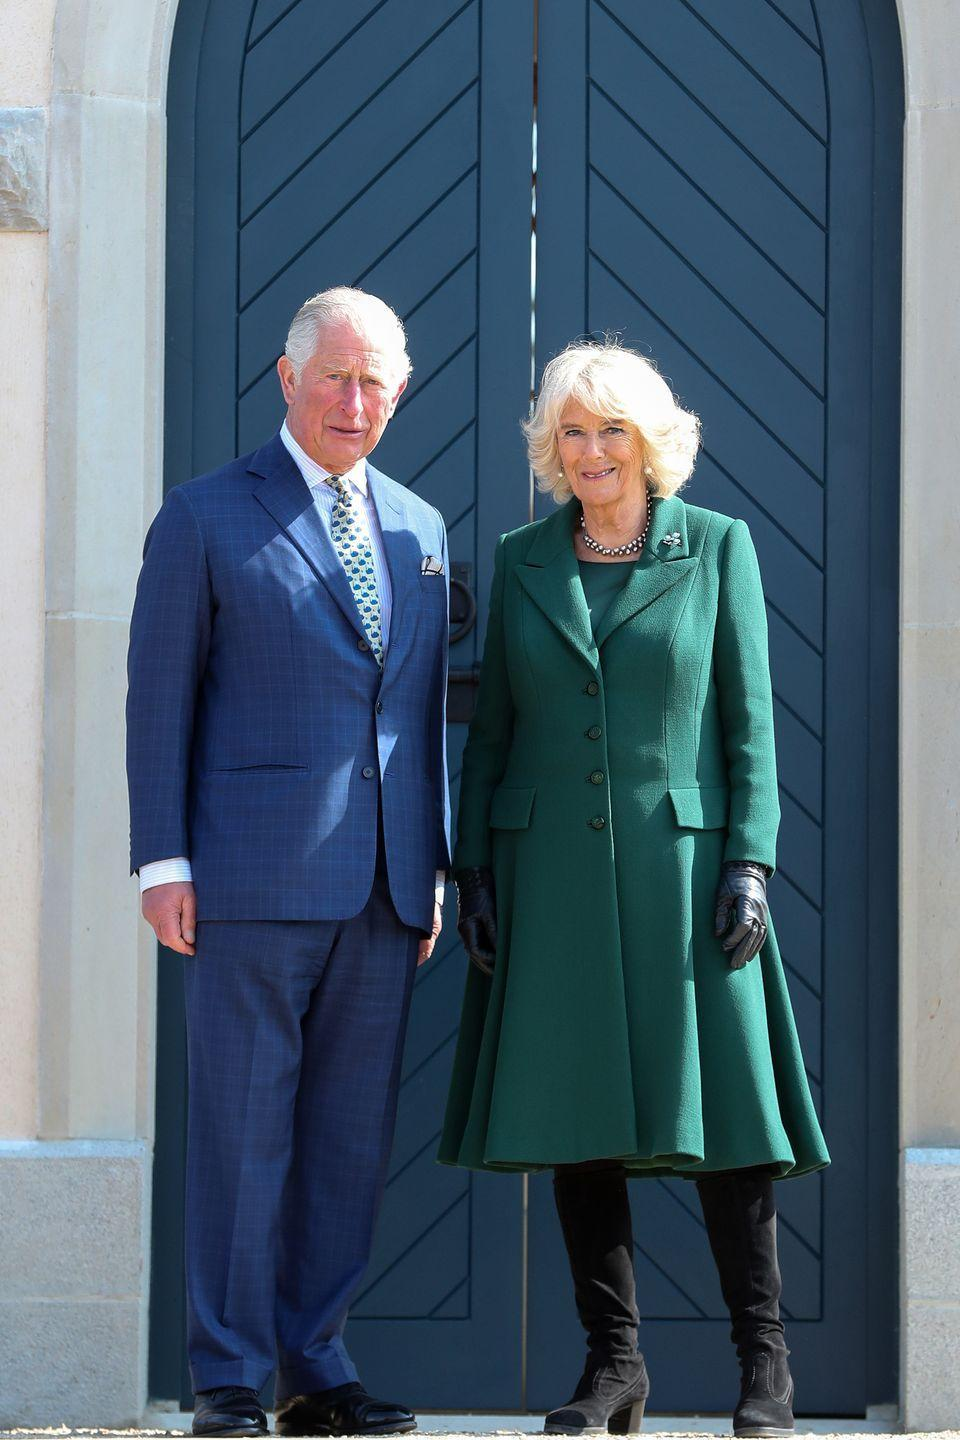 """<p>Camilla wore a green coat dress for her <a href=""""https://www.townandcountrymag.com/society/tradition/a27088939/prince-charles-camilla-wedding-anniverary-northern-ireland/"""" rel=""""nofollow noopener"""" target=""""_blank"""" data-ylk=""""slk:trip to Northern Ireland with Prince Charles"""" class=""""link rapid-noclick-resp"""">trip to Northern Ireland with Prince Charles</a>. The royal topped off the look with black boots and gloves, pearl drop earrings, a choker necklace of black pearls, and an emerald and diamond shamrock brooch. </p>"""